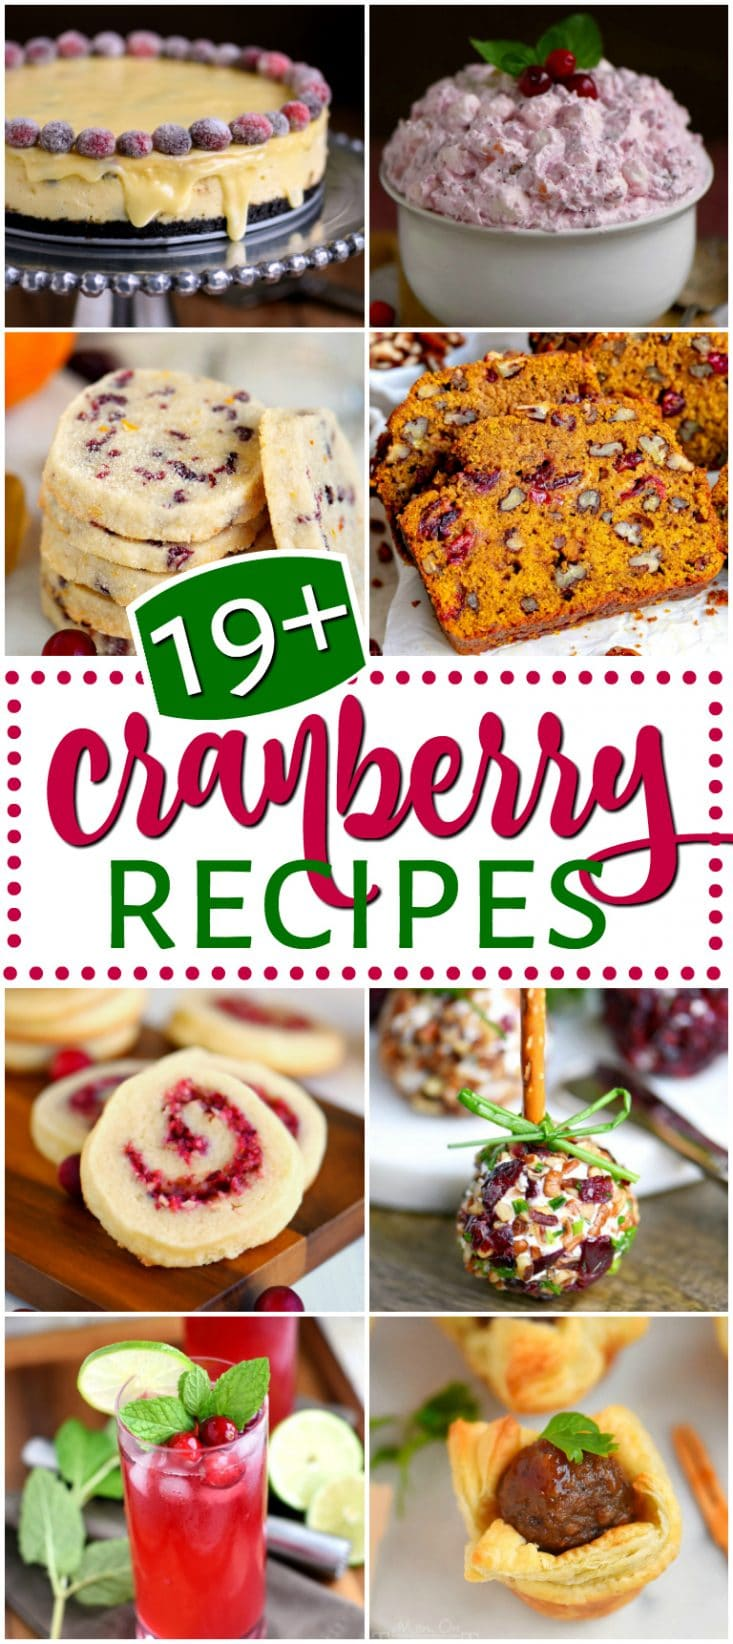 cranberry-recipes-collage